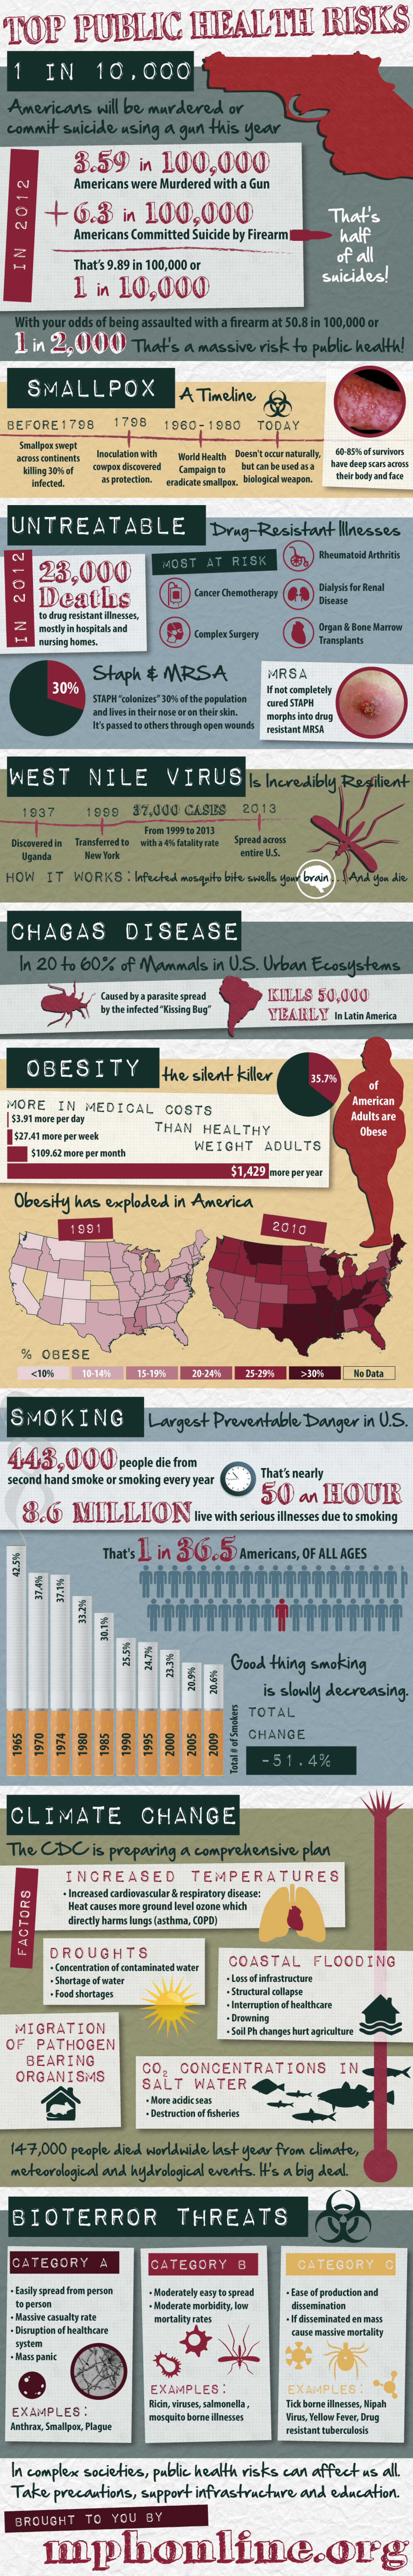 Top Public Health Risks Infographic